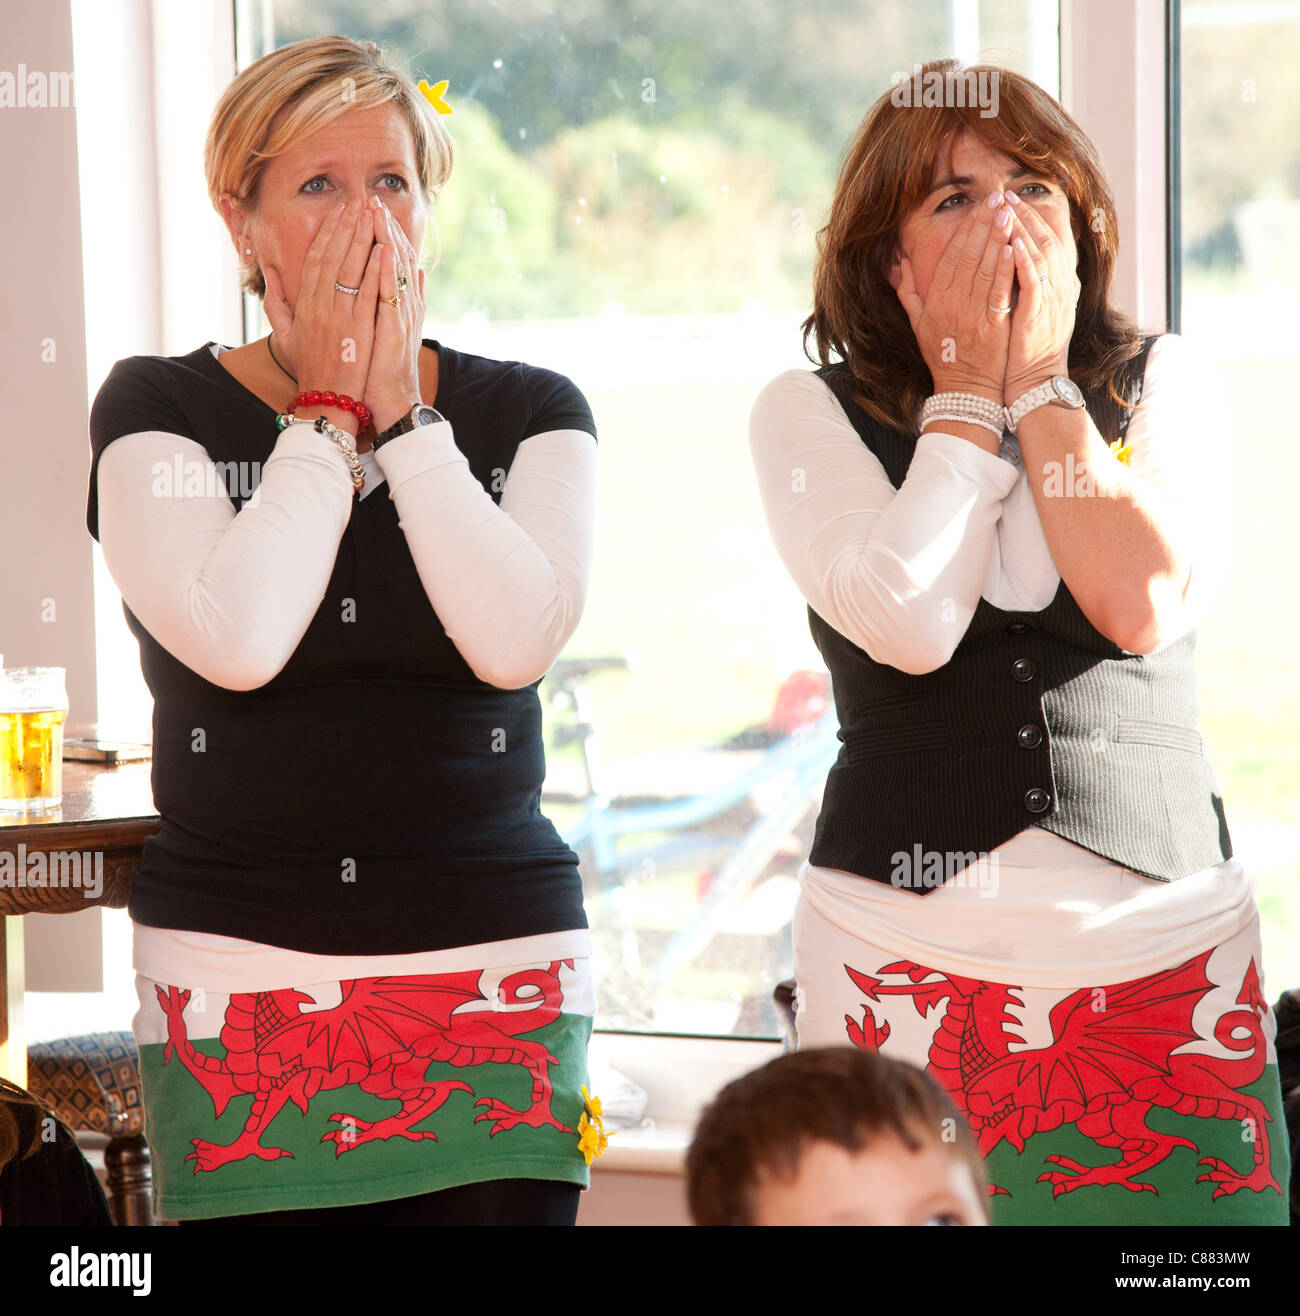 Aberystwyth Rugby club, Wales UK , 15 Oct 2011. Two female Welsh rugby fans watch the Rugby World cup semi final - Stock Image